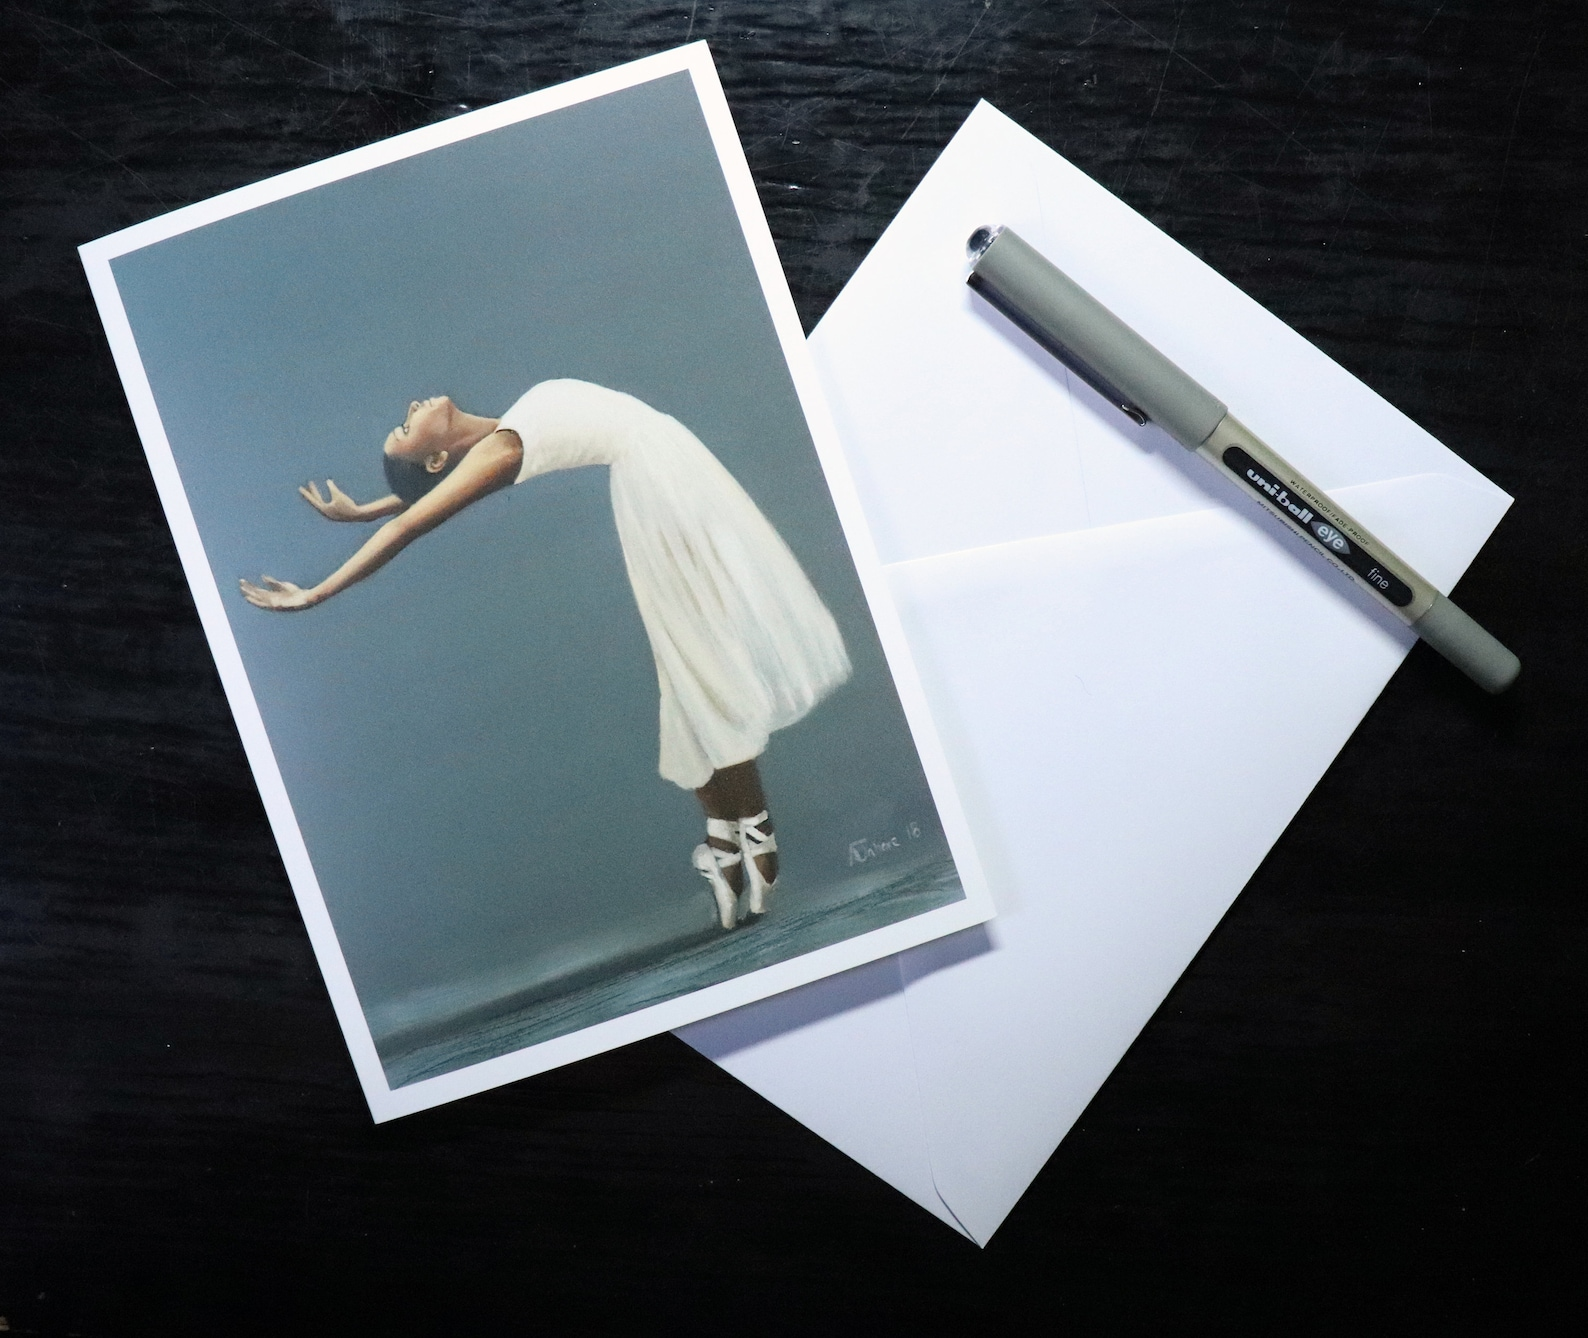 blank greeting card of young ballerina, ballet dancer on pointe, ballet artwork print // birthday cards, art prints, greetings b